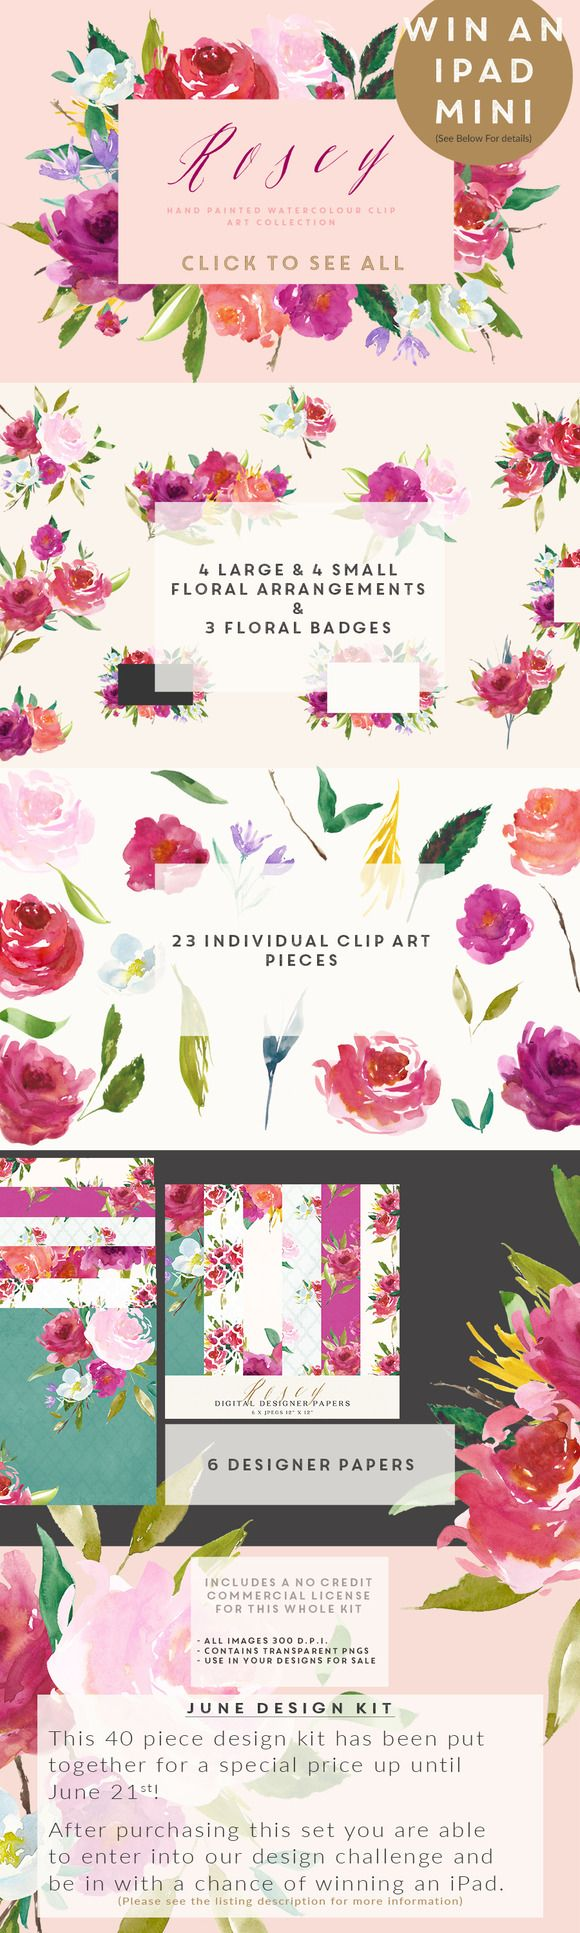 LET'S DO THIS GUYS! June Design Challenge Kit by CreateTheCut on Creative Market